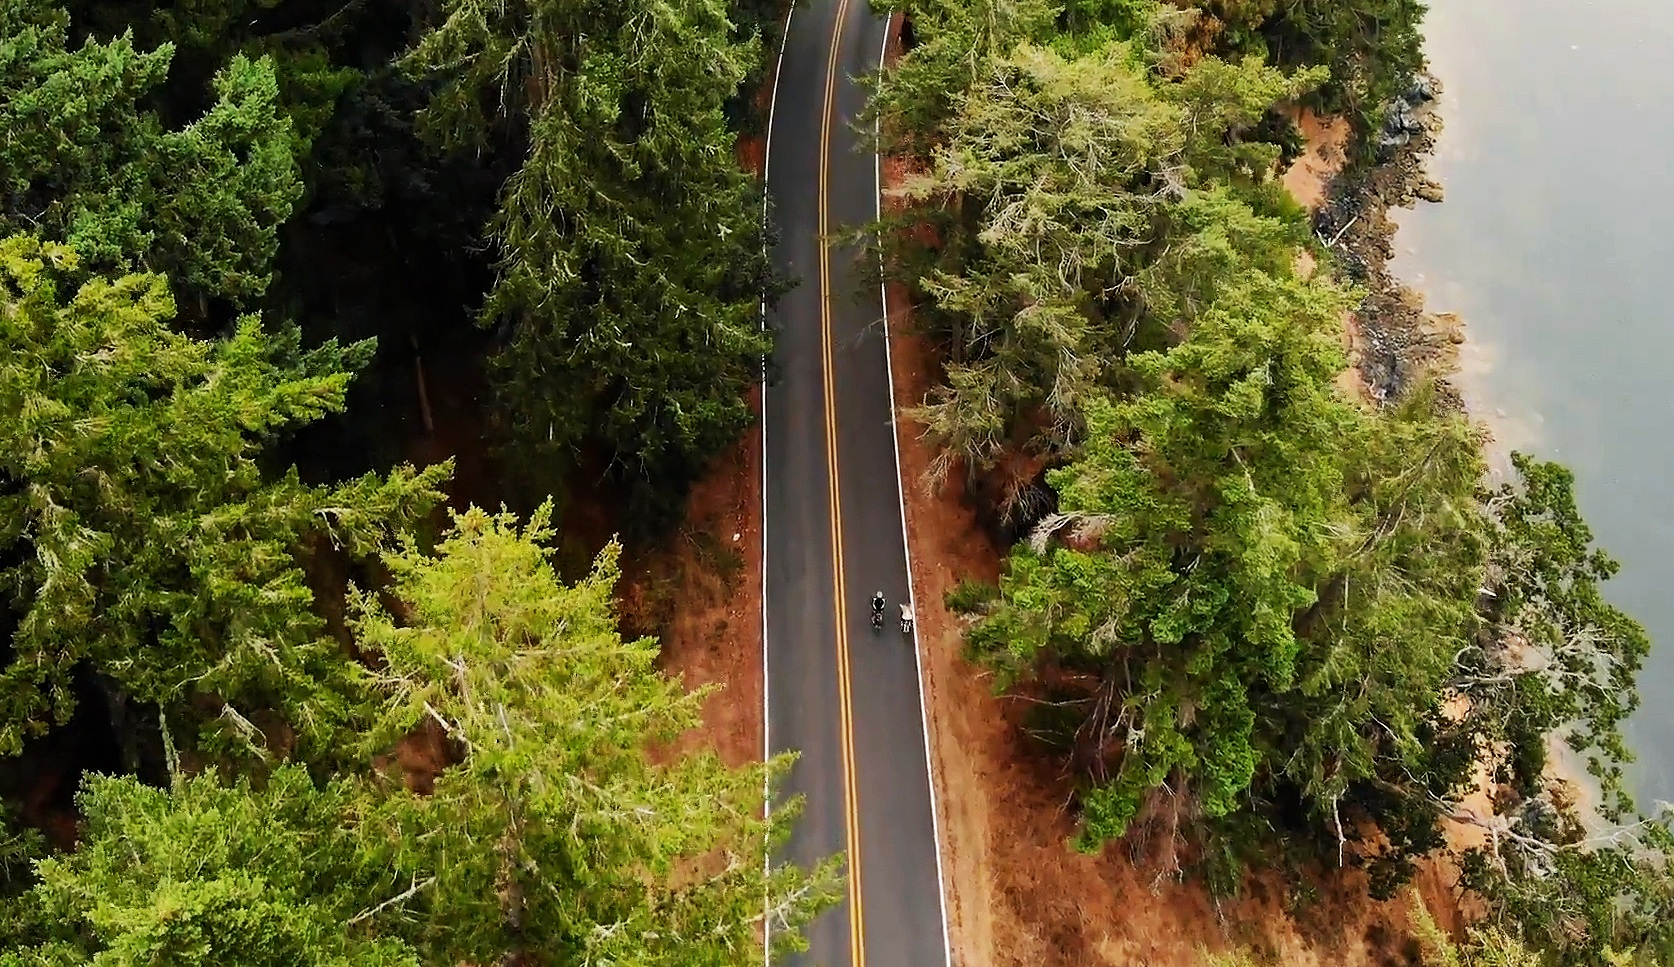 Cyclists from above. Orcas Island is a top destination for bike tours.